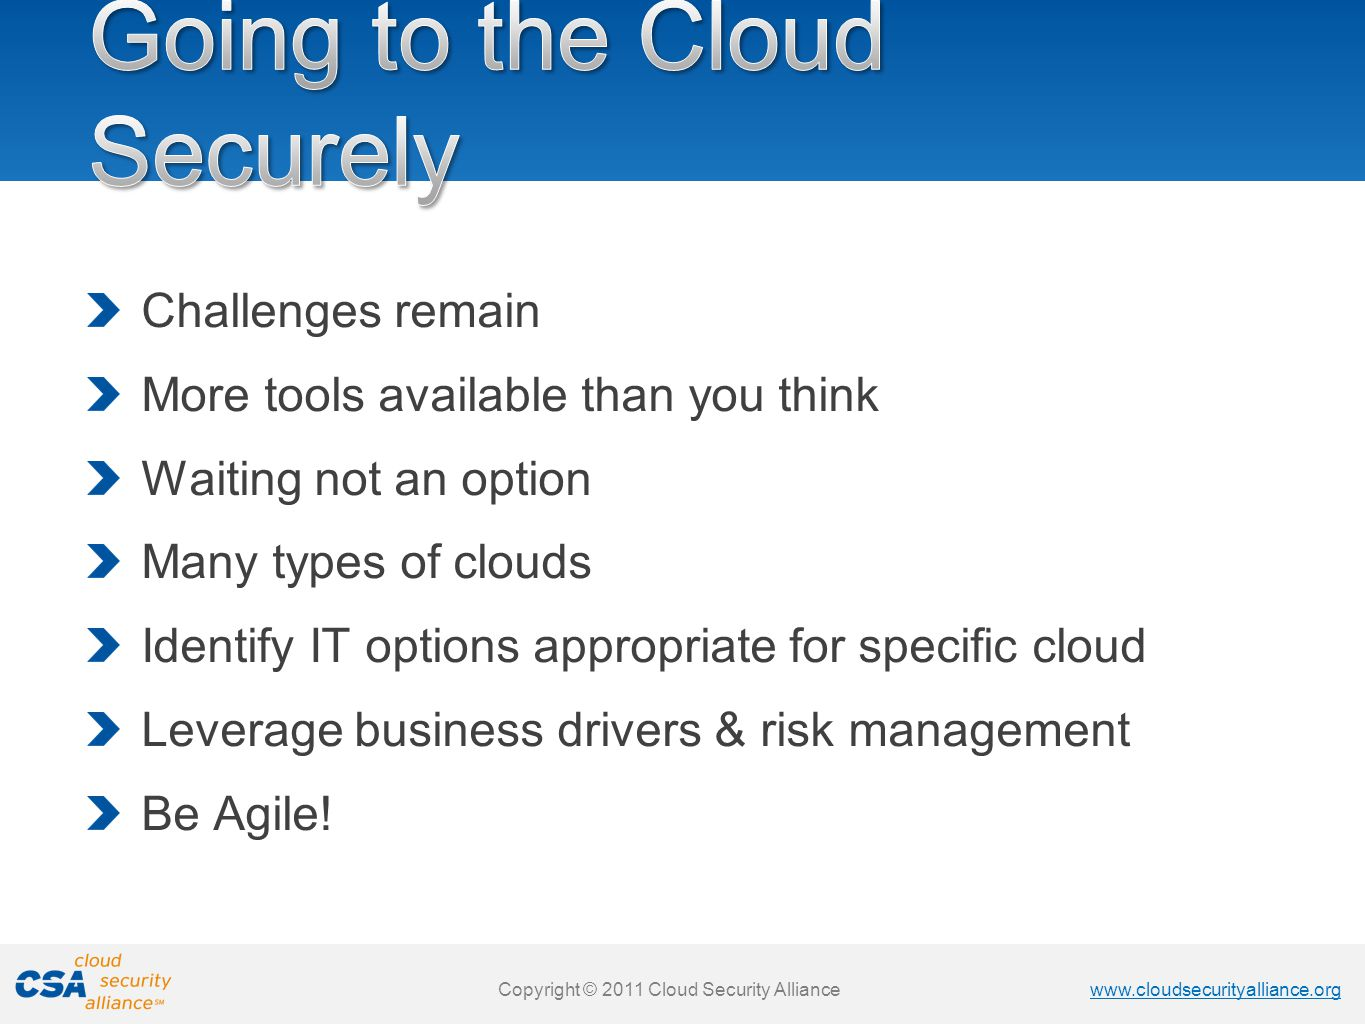 www.cloudsecurityalliance.org Copyright © 2011 Cloud Security Alliance www.cloudsecurityalliance.org Copyright © 2011 Cloud Security Alliance Challenges remain More tools available than you think Waiting not an option Many types of clouds Identify IT options appropriate for specific cloud Leverage business drivers & risk management Be Agile!